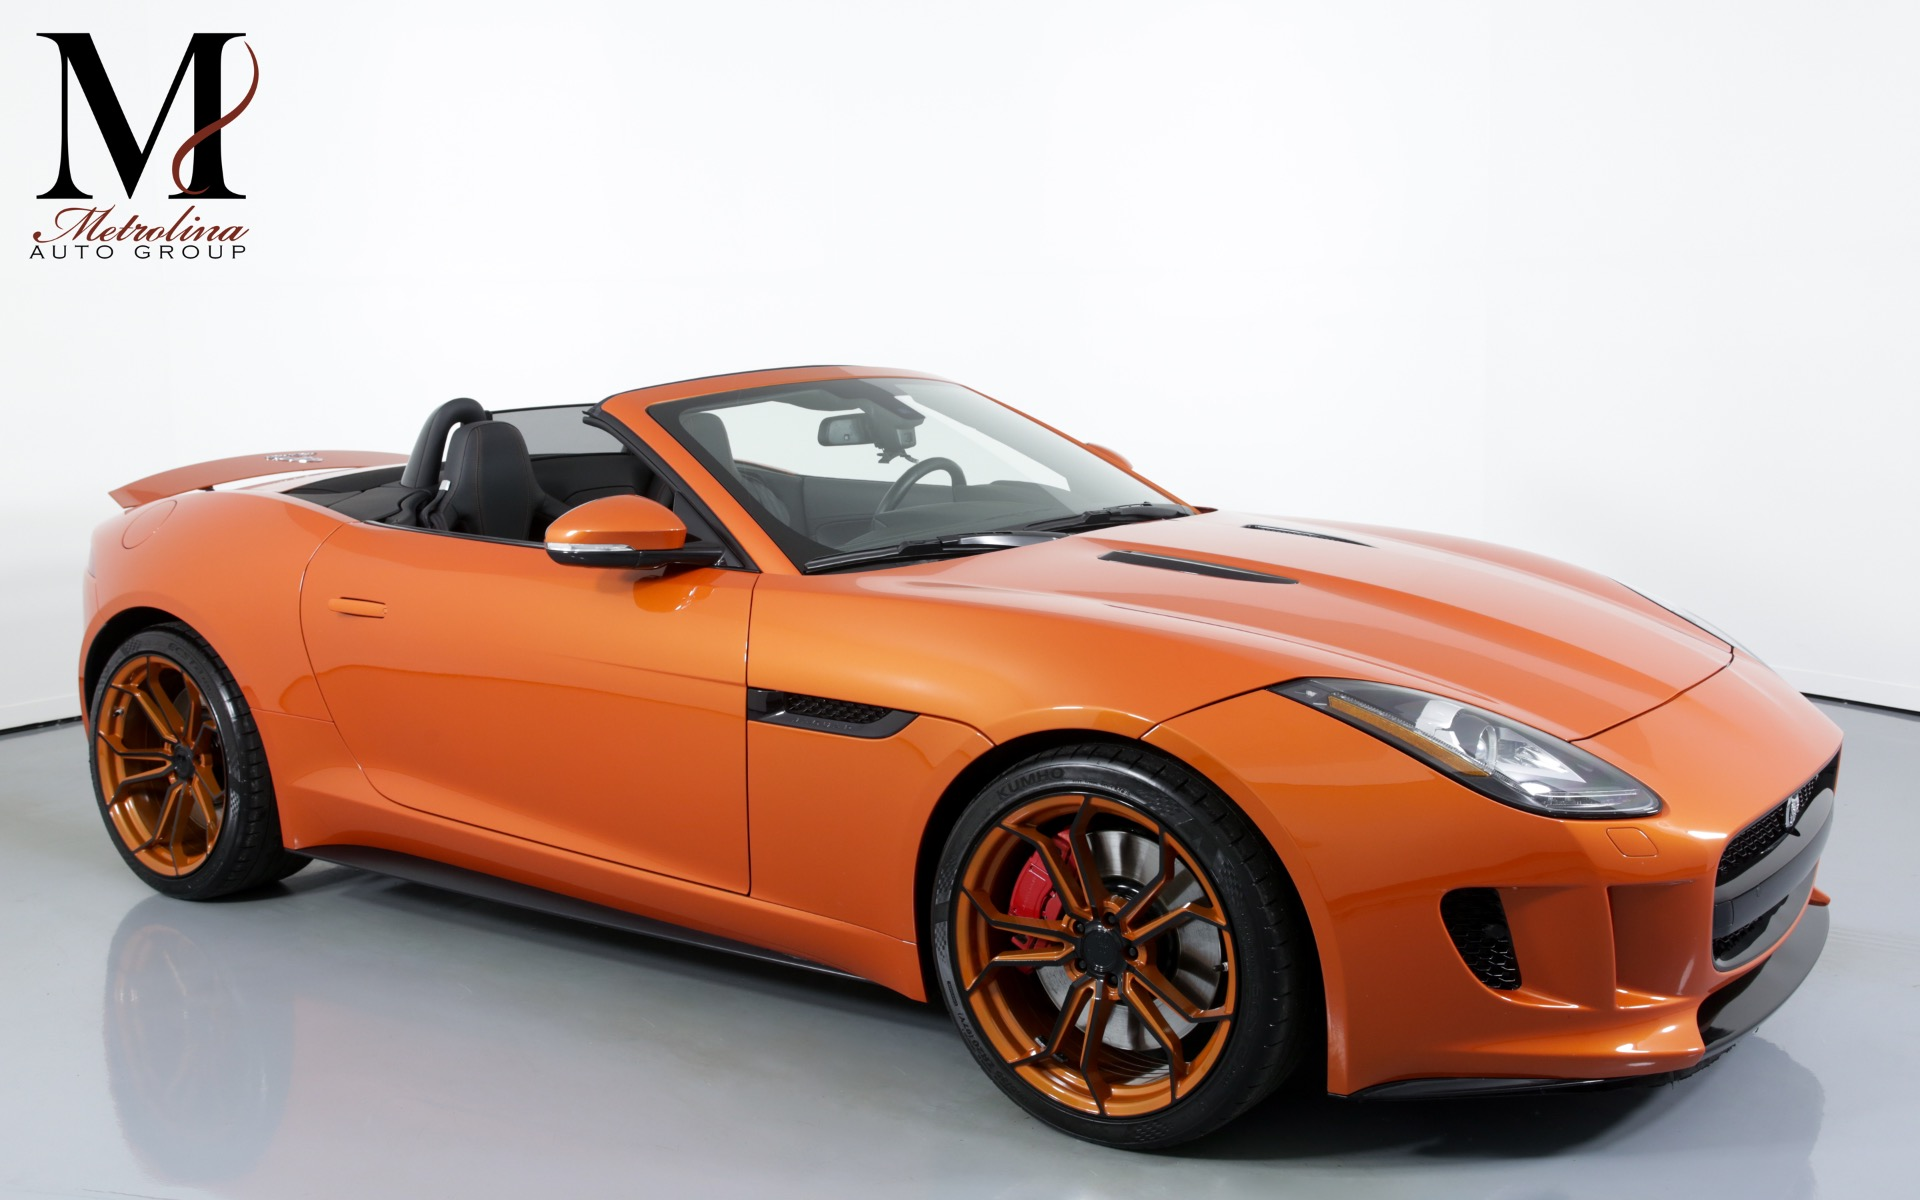 Used 2014 Jaguar F-TYPE V8 S for sale $40,996 at Metrolina Auto Group in Charlotte NC 28217 - 1